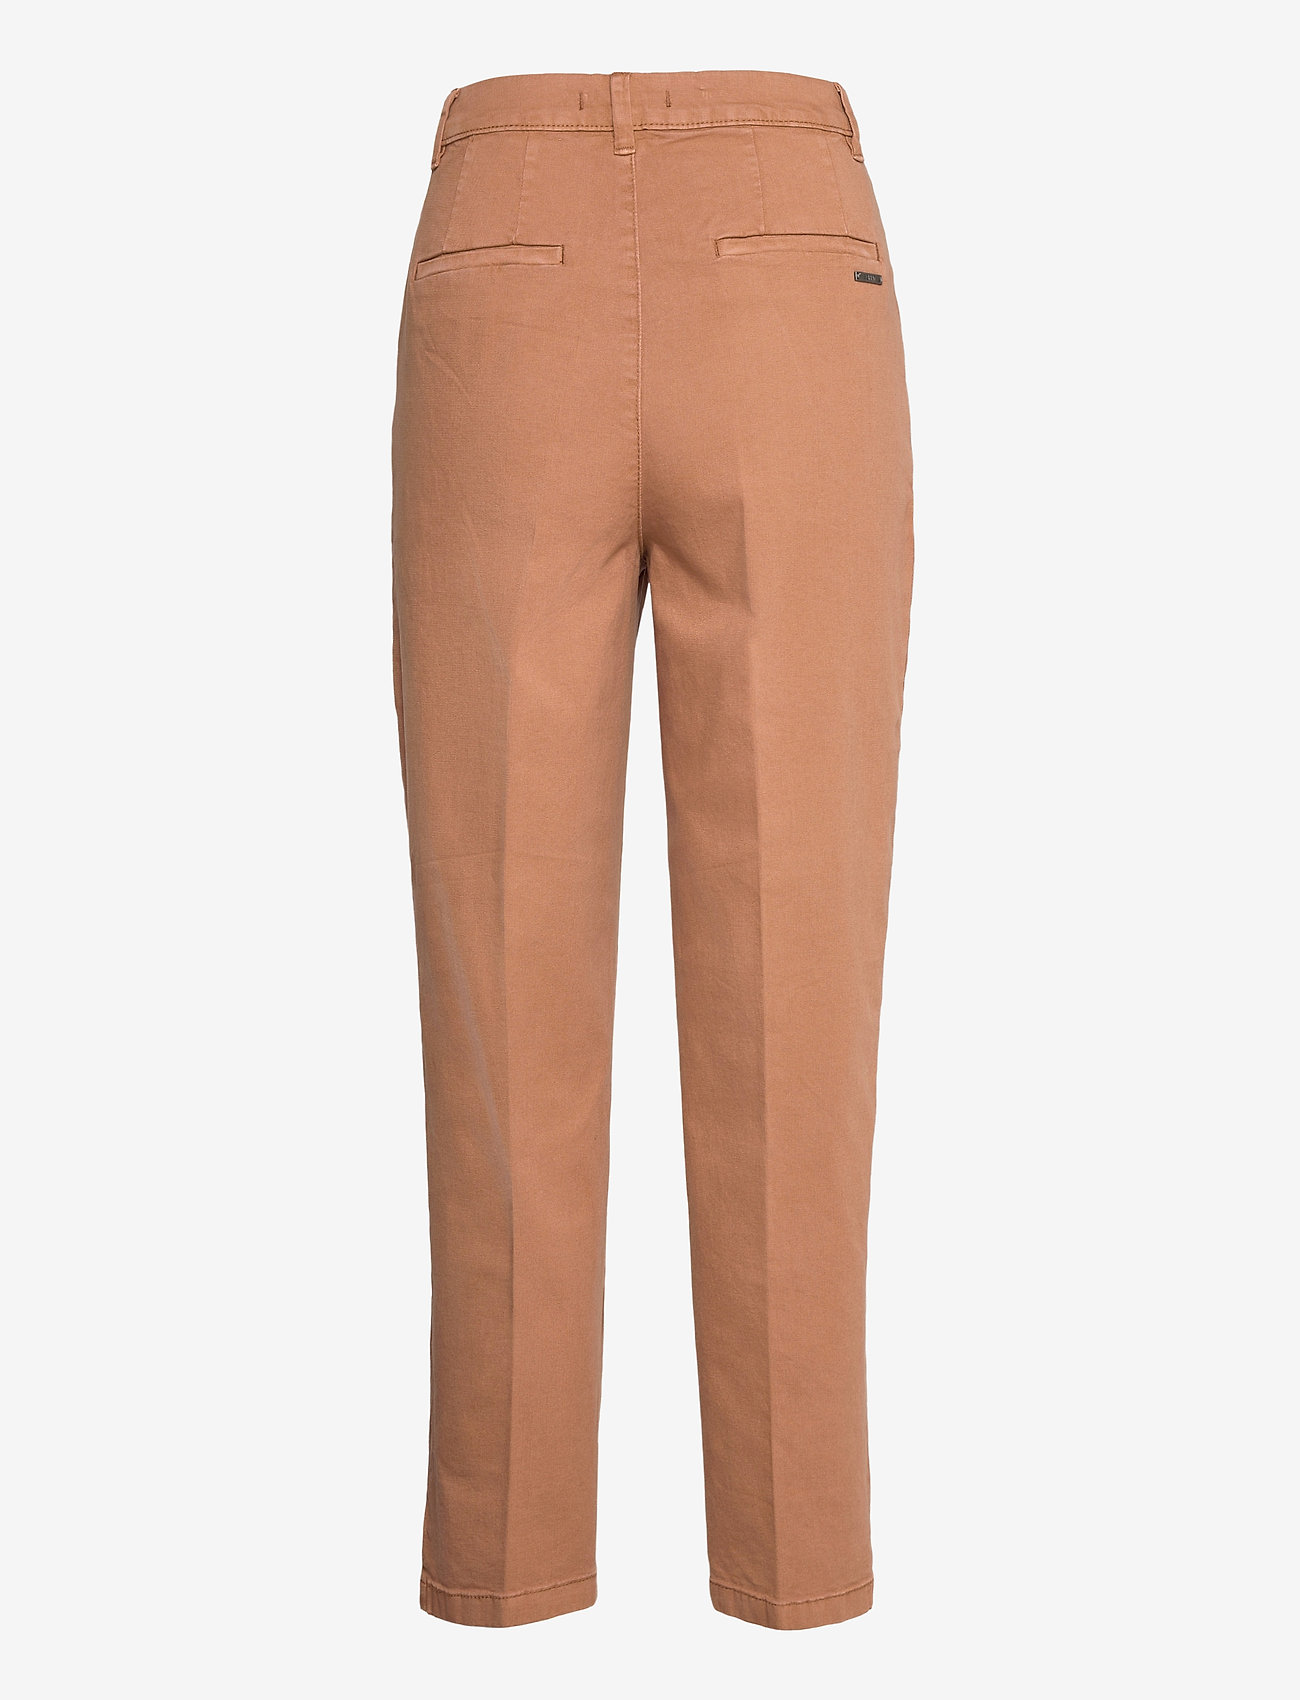 Esprit Casual - Pants woven - chinos - rust brown - 1